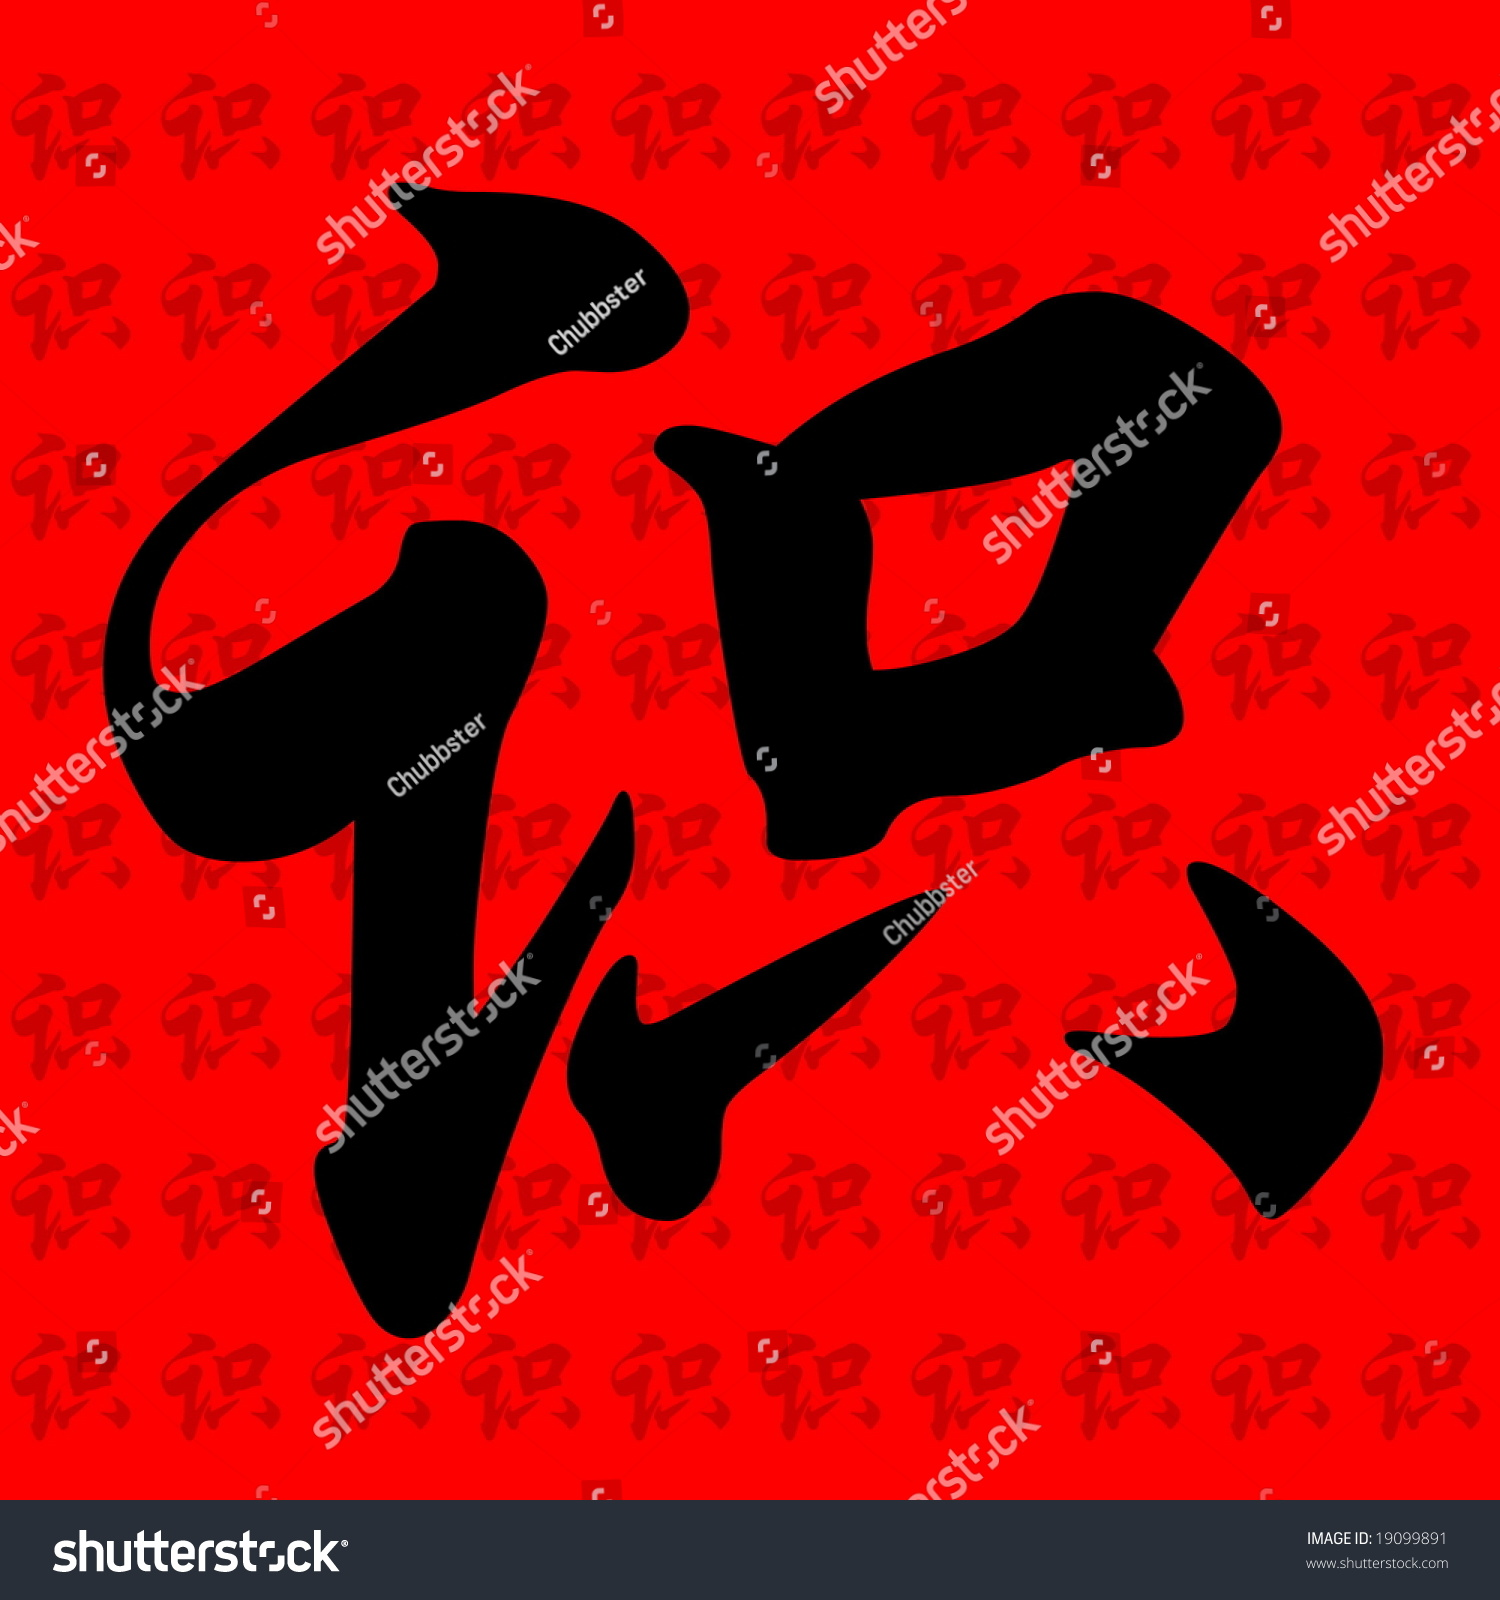 Chinese meaning knowledge stock illustration 19099891 shutterstock chinese meaning knowledge buycottarizona Images